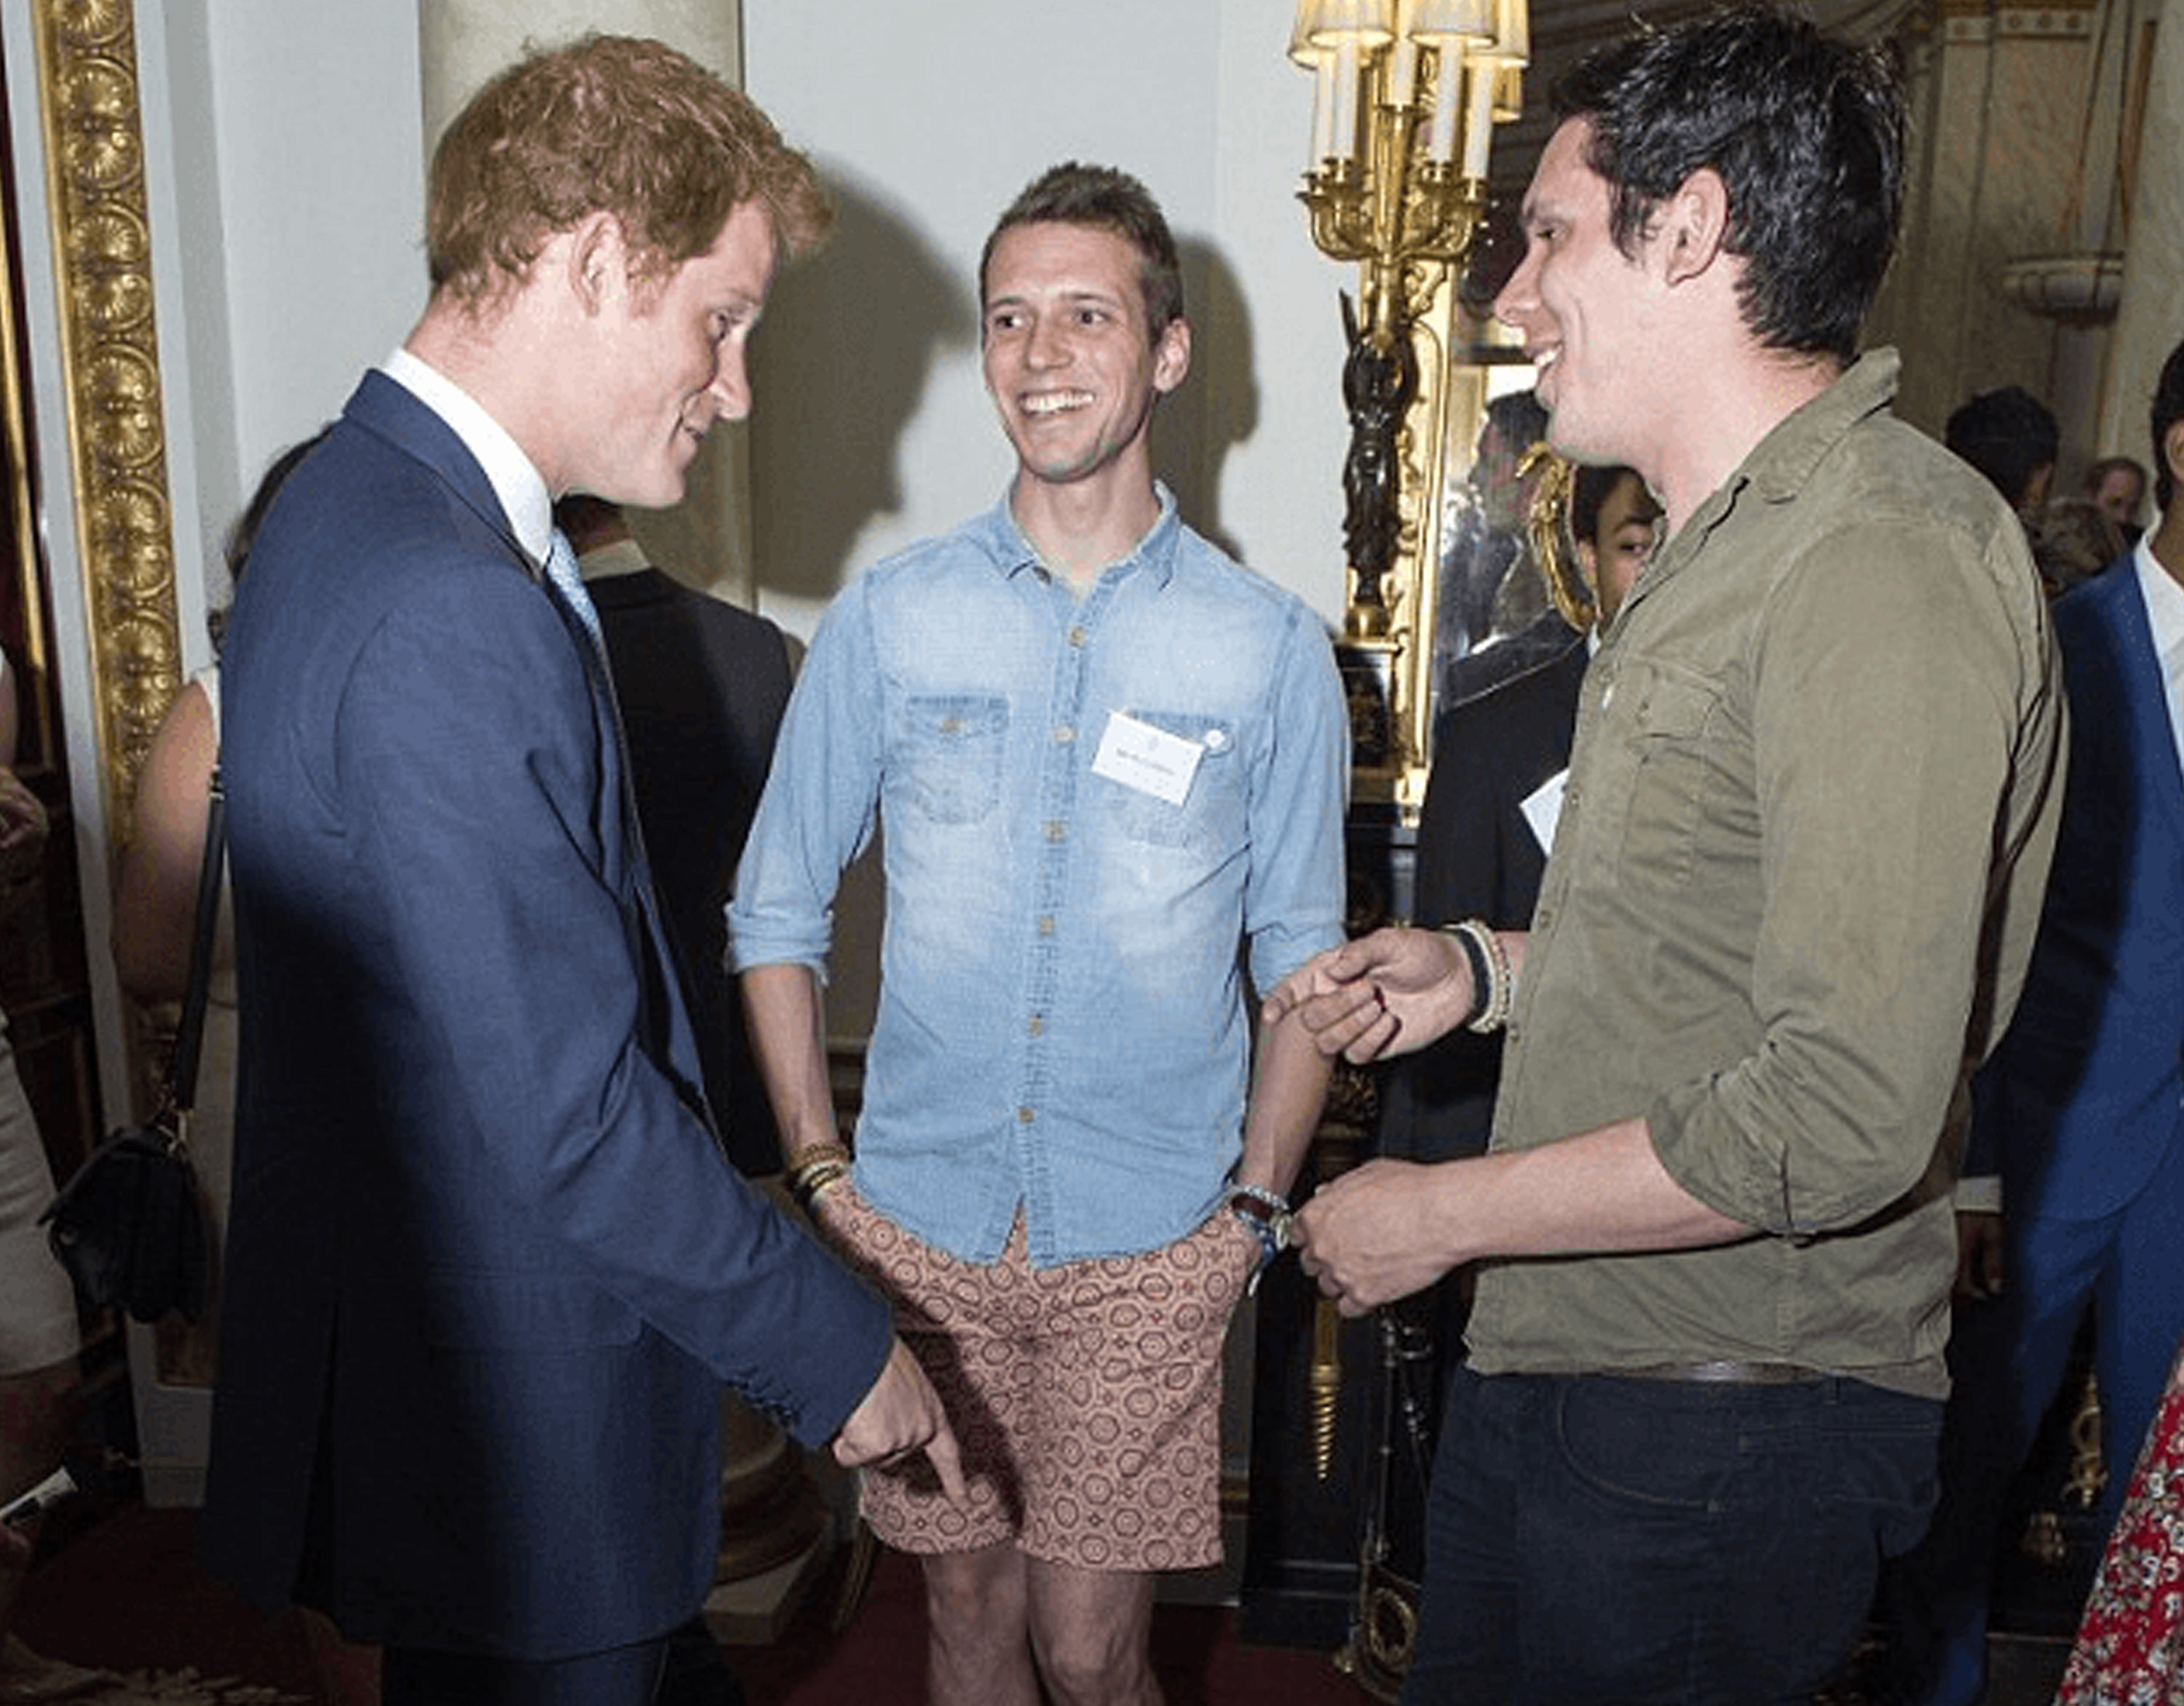 Gandys Brothers meeting Prince Harry